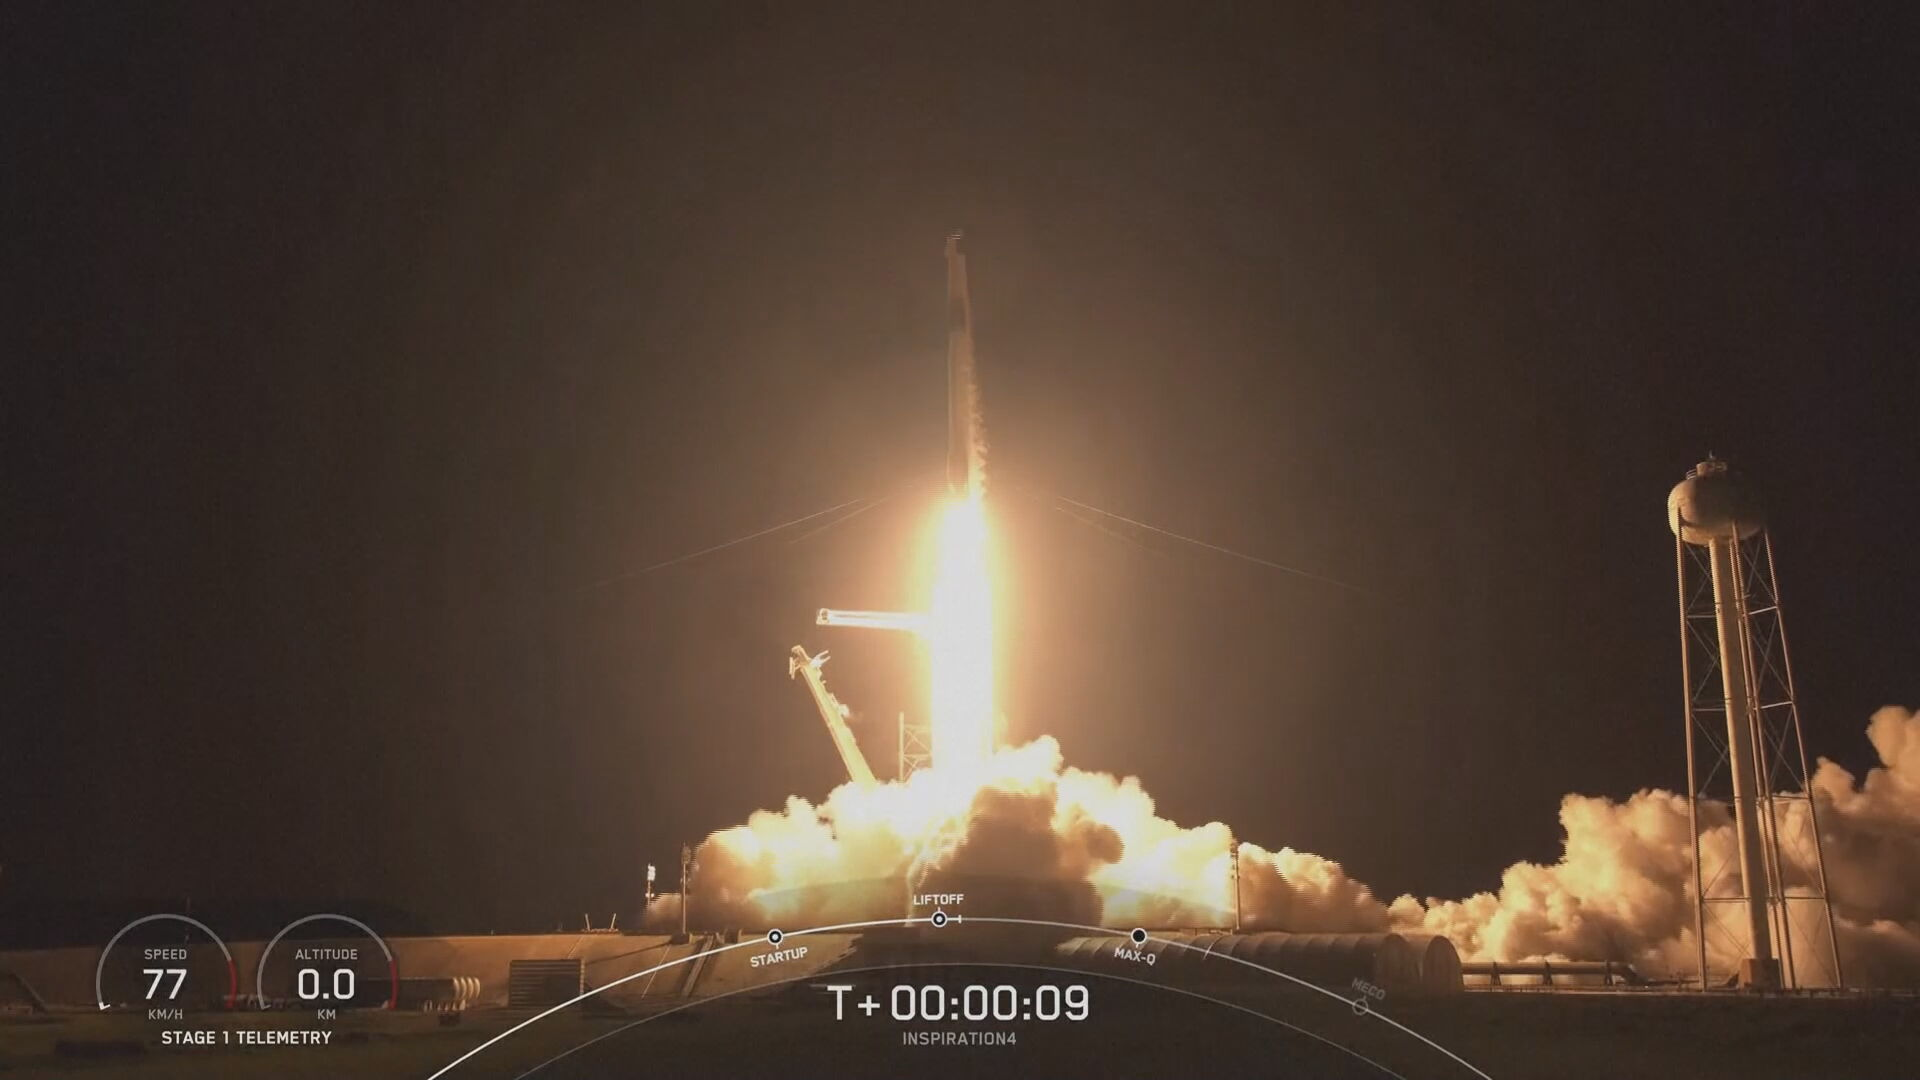 SpaceX successfully launches space flight carrying civilians